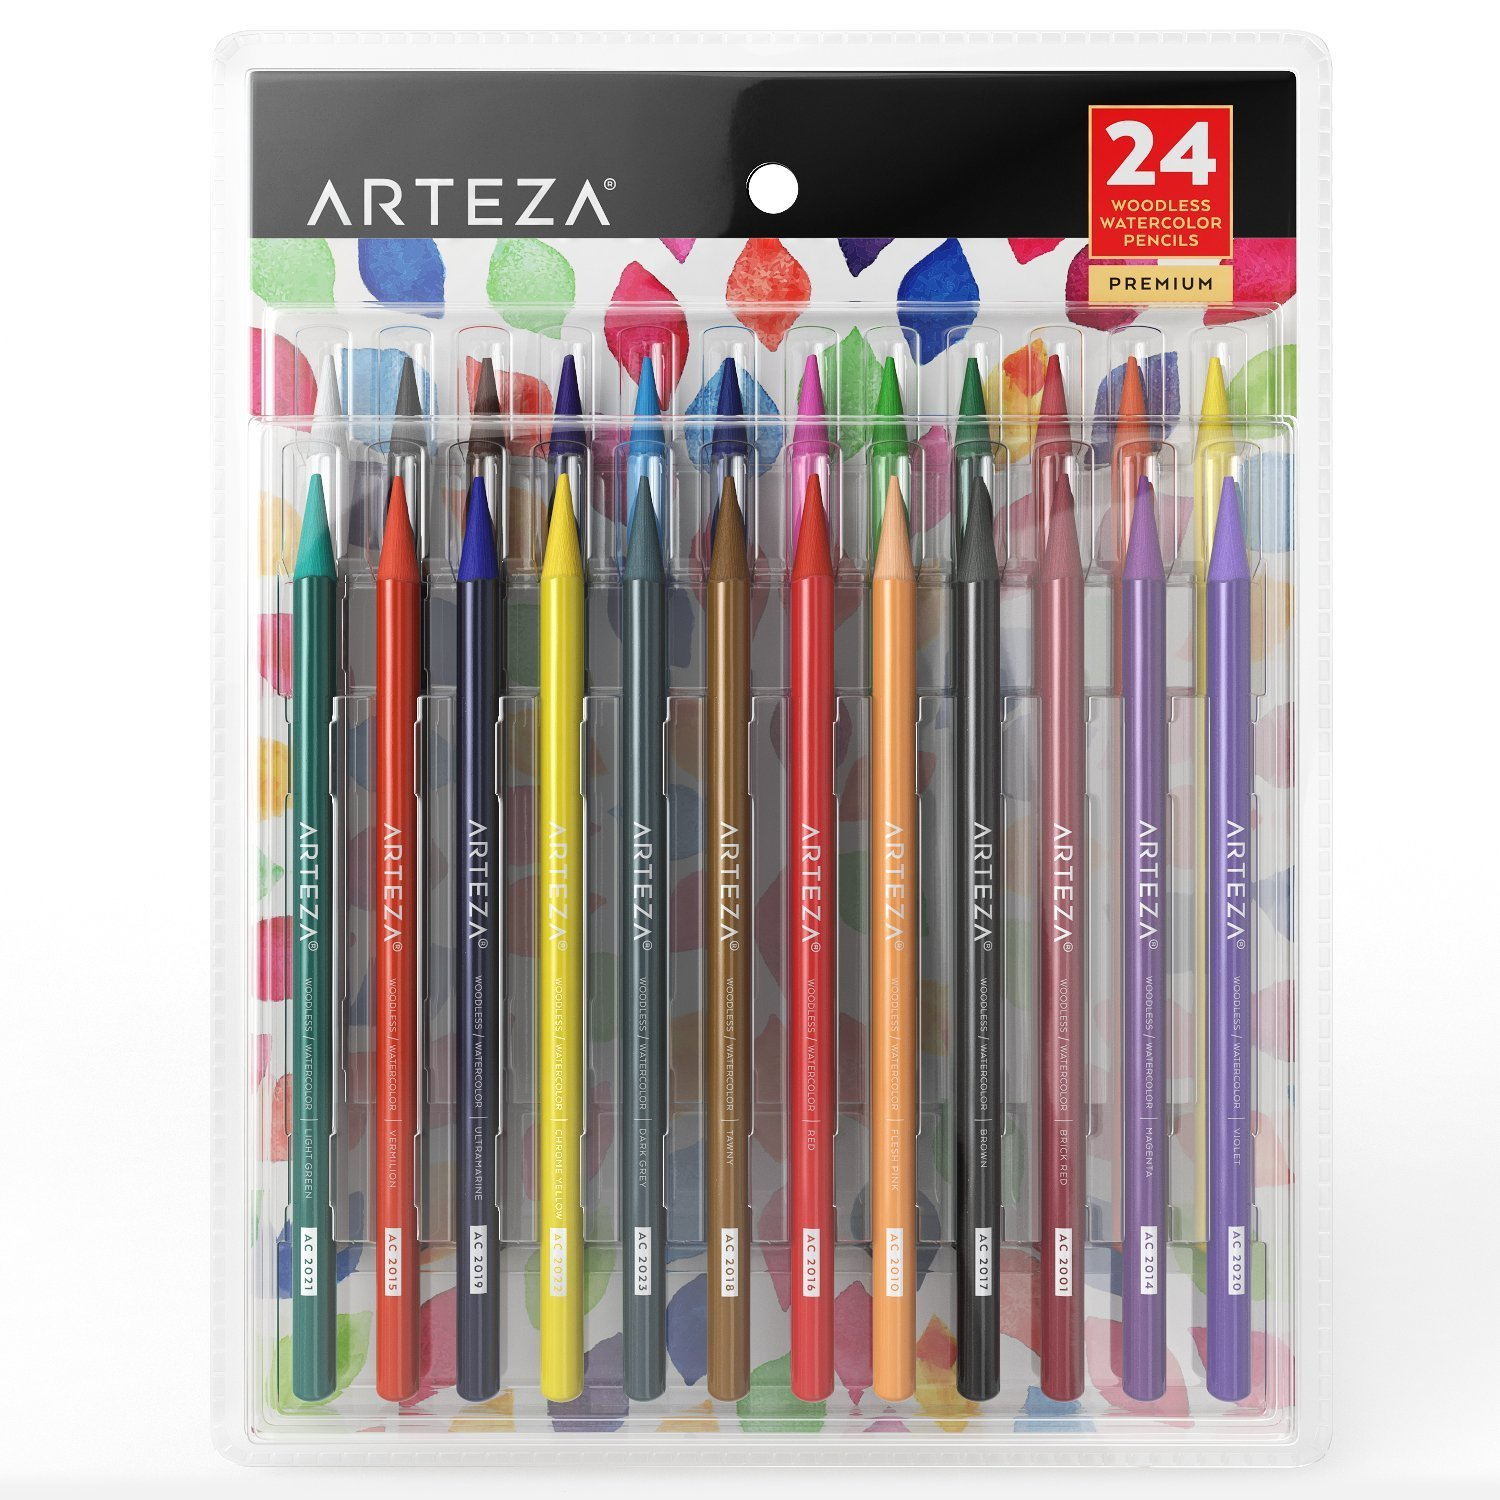 ARTEZA Woodless Watercolor Pencils, Set of 24, Multi Colored Art Drawing Pencils, Great for Blending and Layering, Watercolor Techniques and Adult Coloring Books by ARTEZA